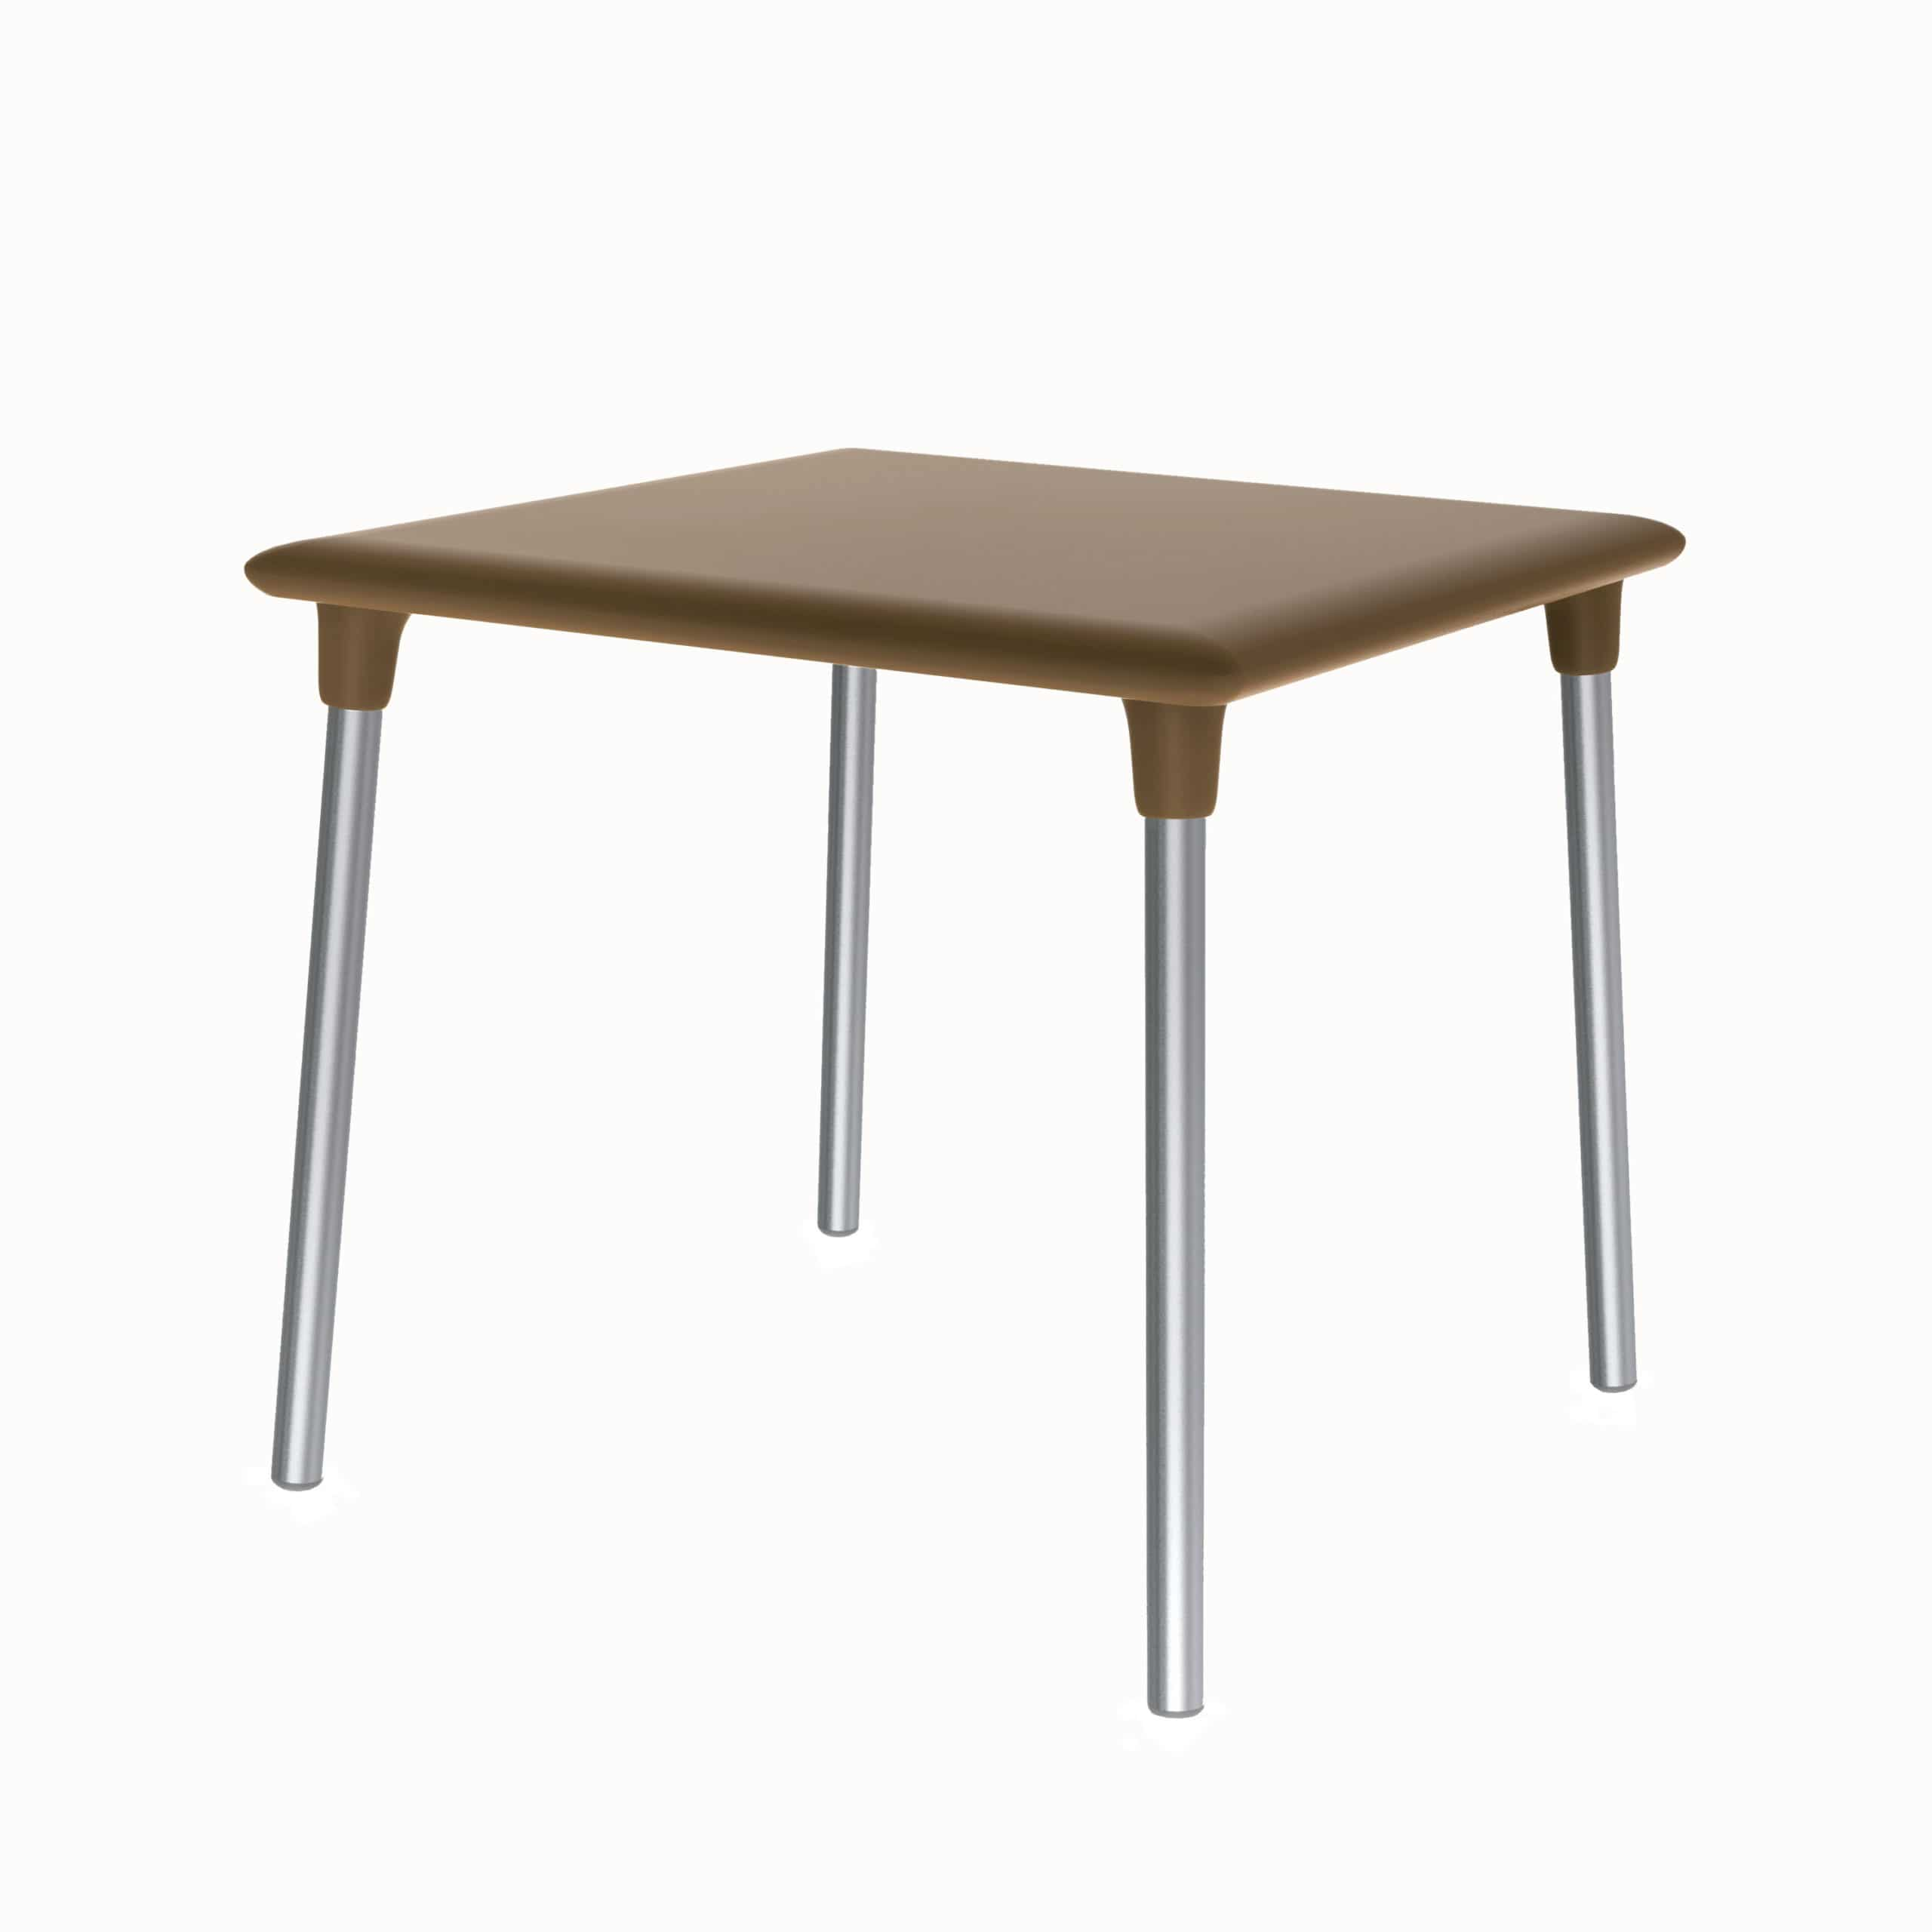 <p>Outdoor Furniture Contemporary Collection – Resaca Commercial Dining Table – Steel Legs – Brown Tabletop.</p> <p> </p> <p>Table for indoor and outdoor use. Combine with chairs of your choice.</p> <p> </p> <p>Adaptable to any environment being designed by architects. Rounded shape offers comfort, whilst capturing essential features such as elegance lightness, functionality, ergonomics and care for the environment.</p>